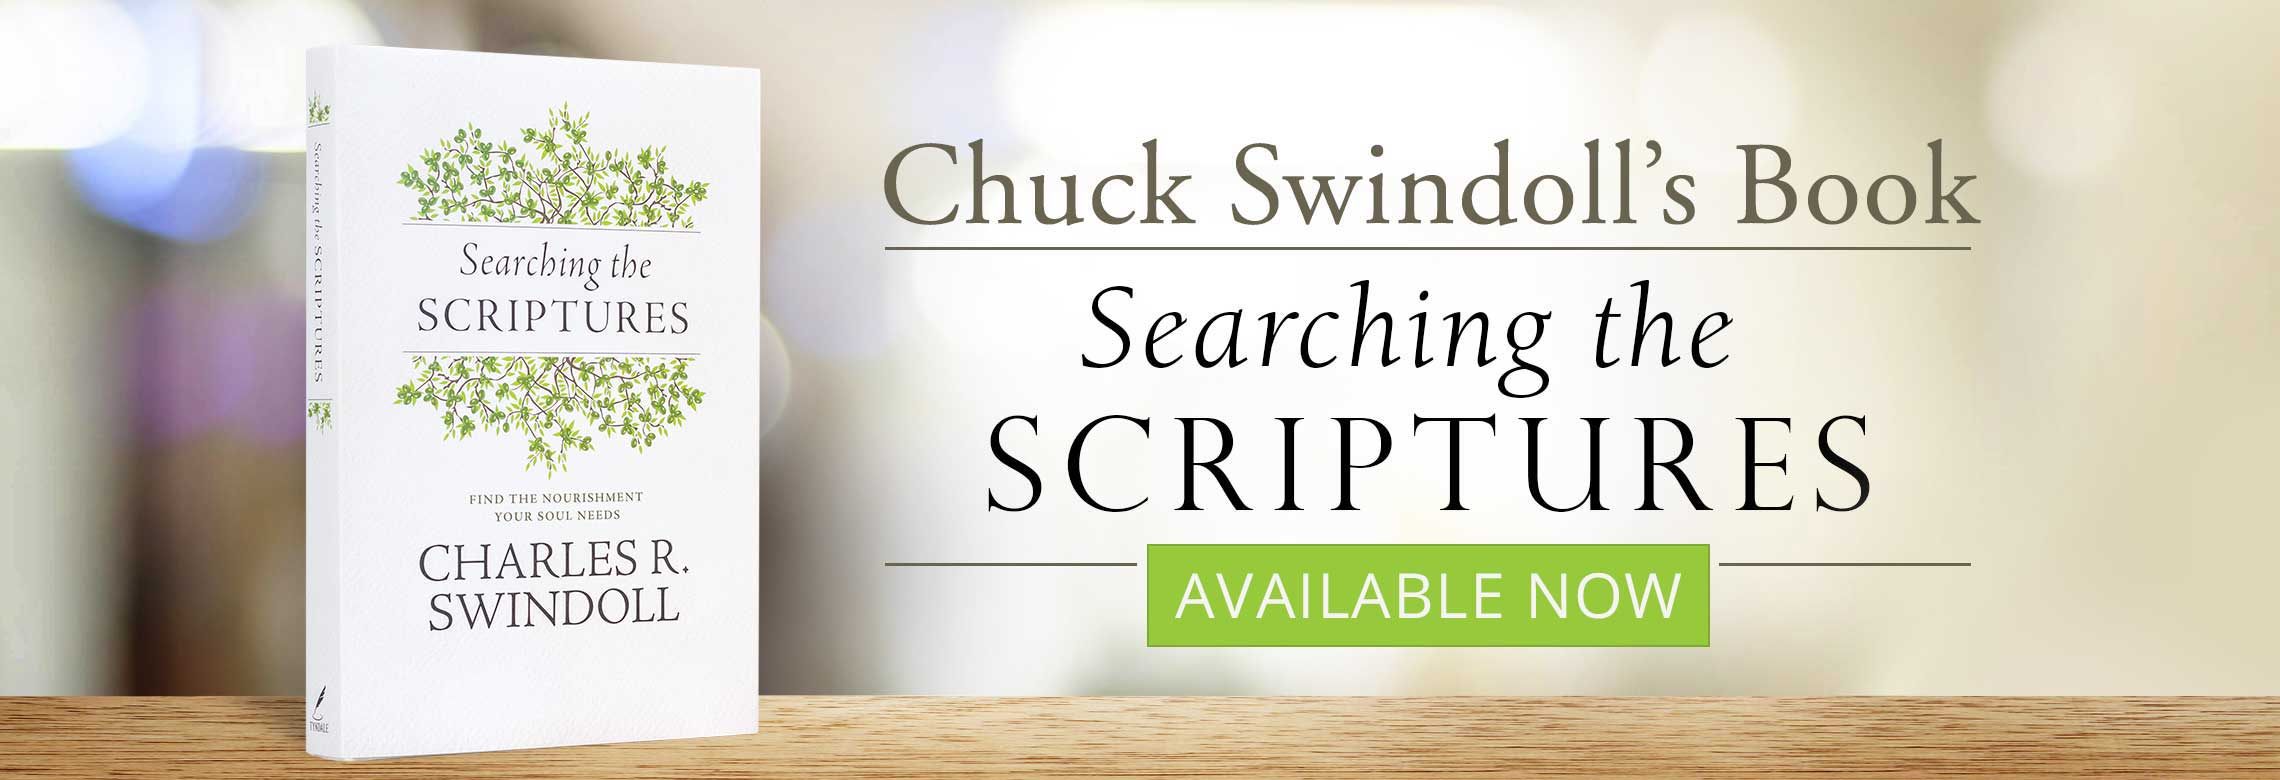 Available Now: Chuck Swindoll's book: Searching the Scriptures